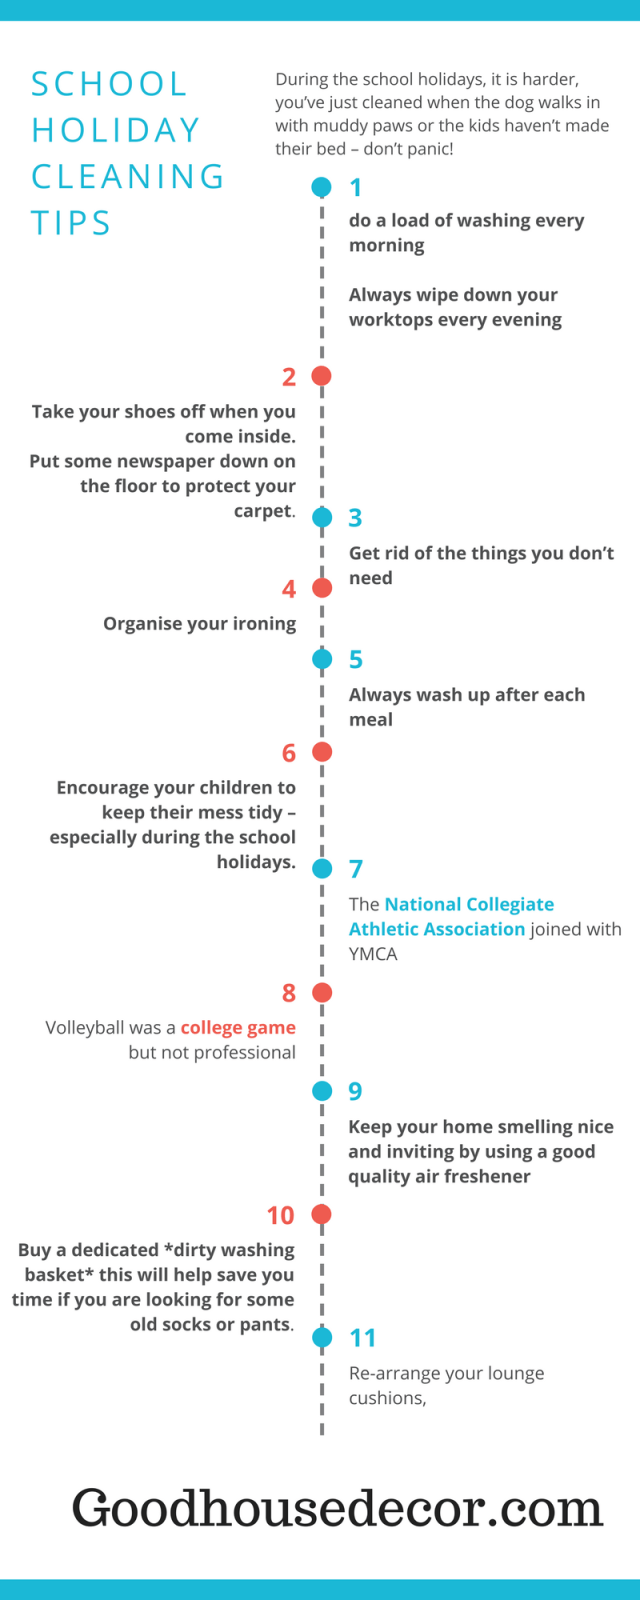 school holiday cleaning tips